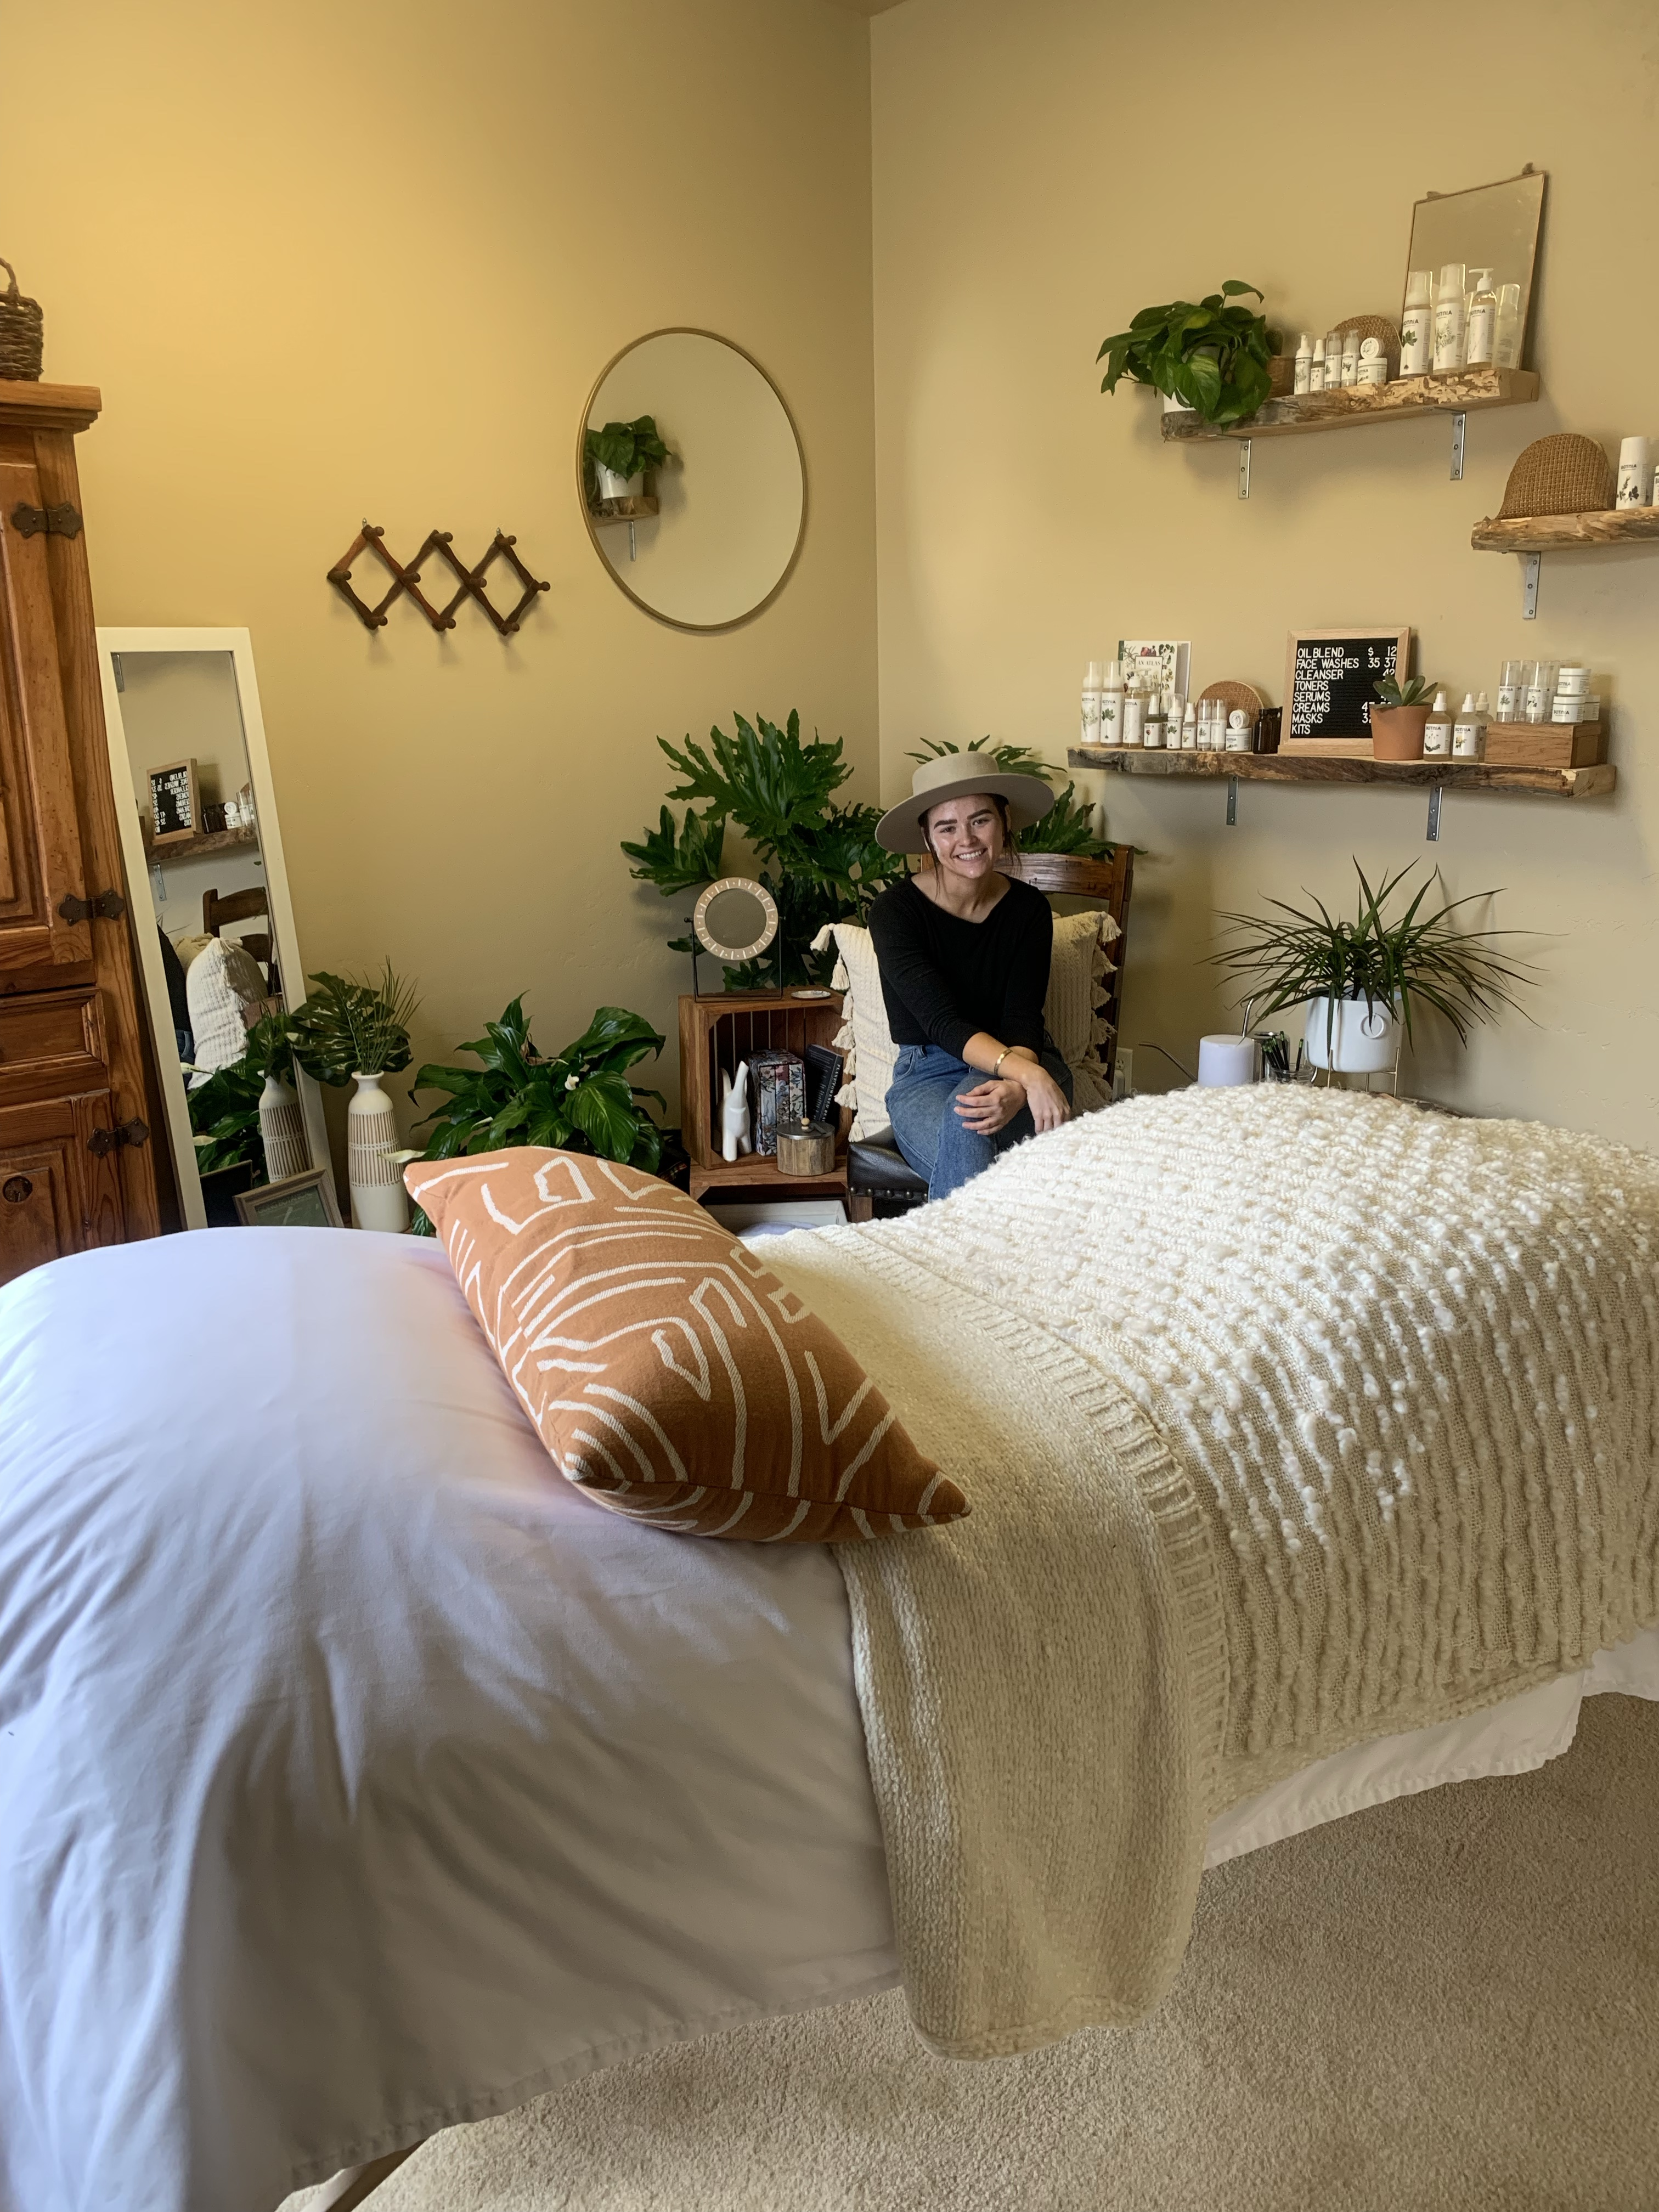 Skincare & Self-Care in Idaho. Going Botanical darling space and organic products. For more recipes and travel posts be sure to follow me at www.sprouting-vitality.com or on instagram @sproutingvitality. #kenzinthekitch #mckenzieonthemove